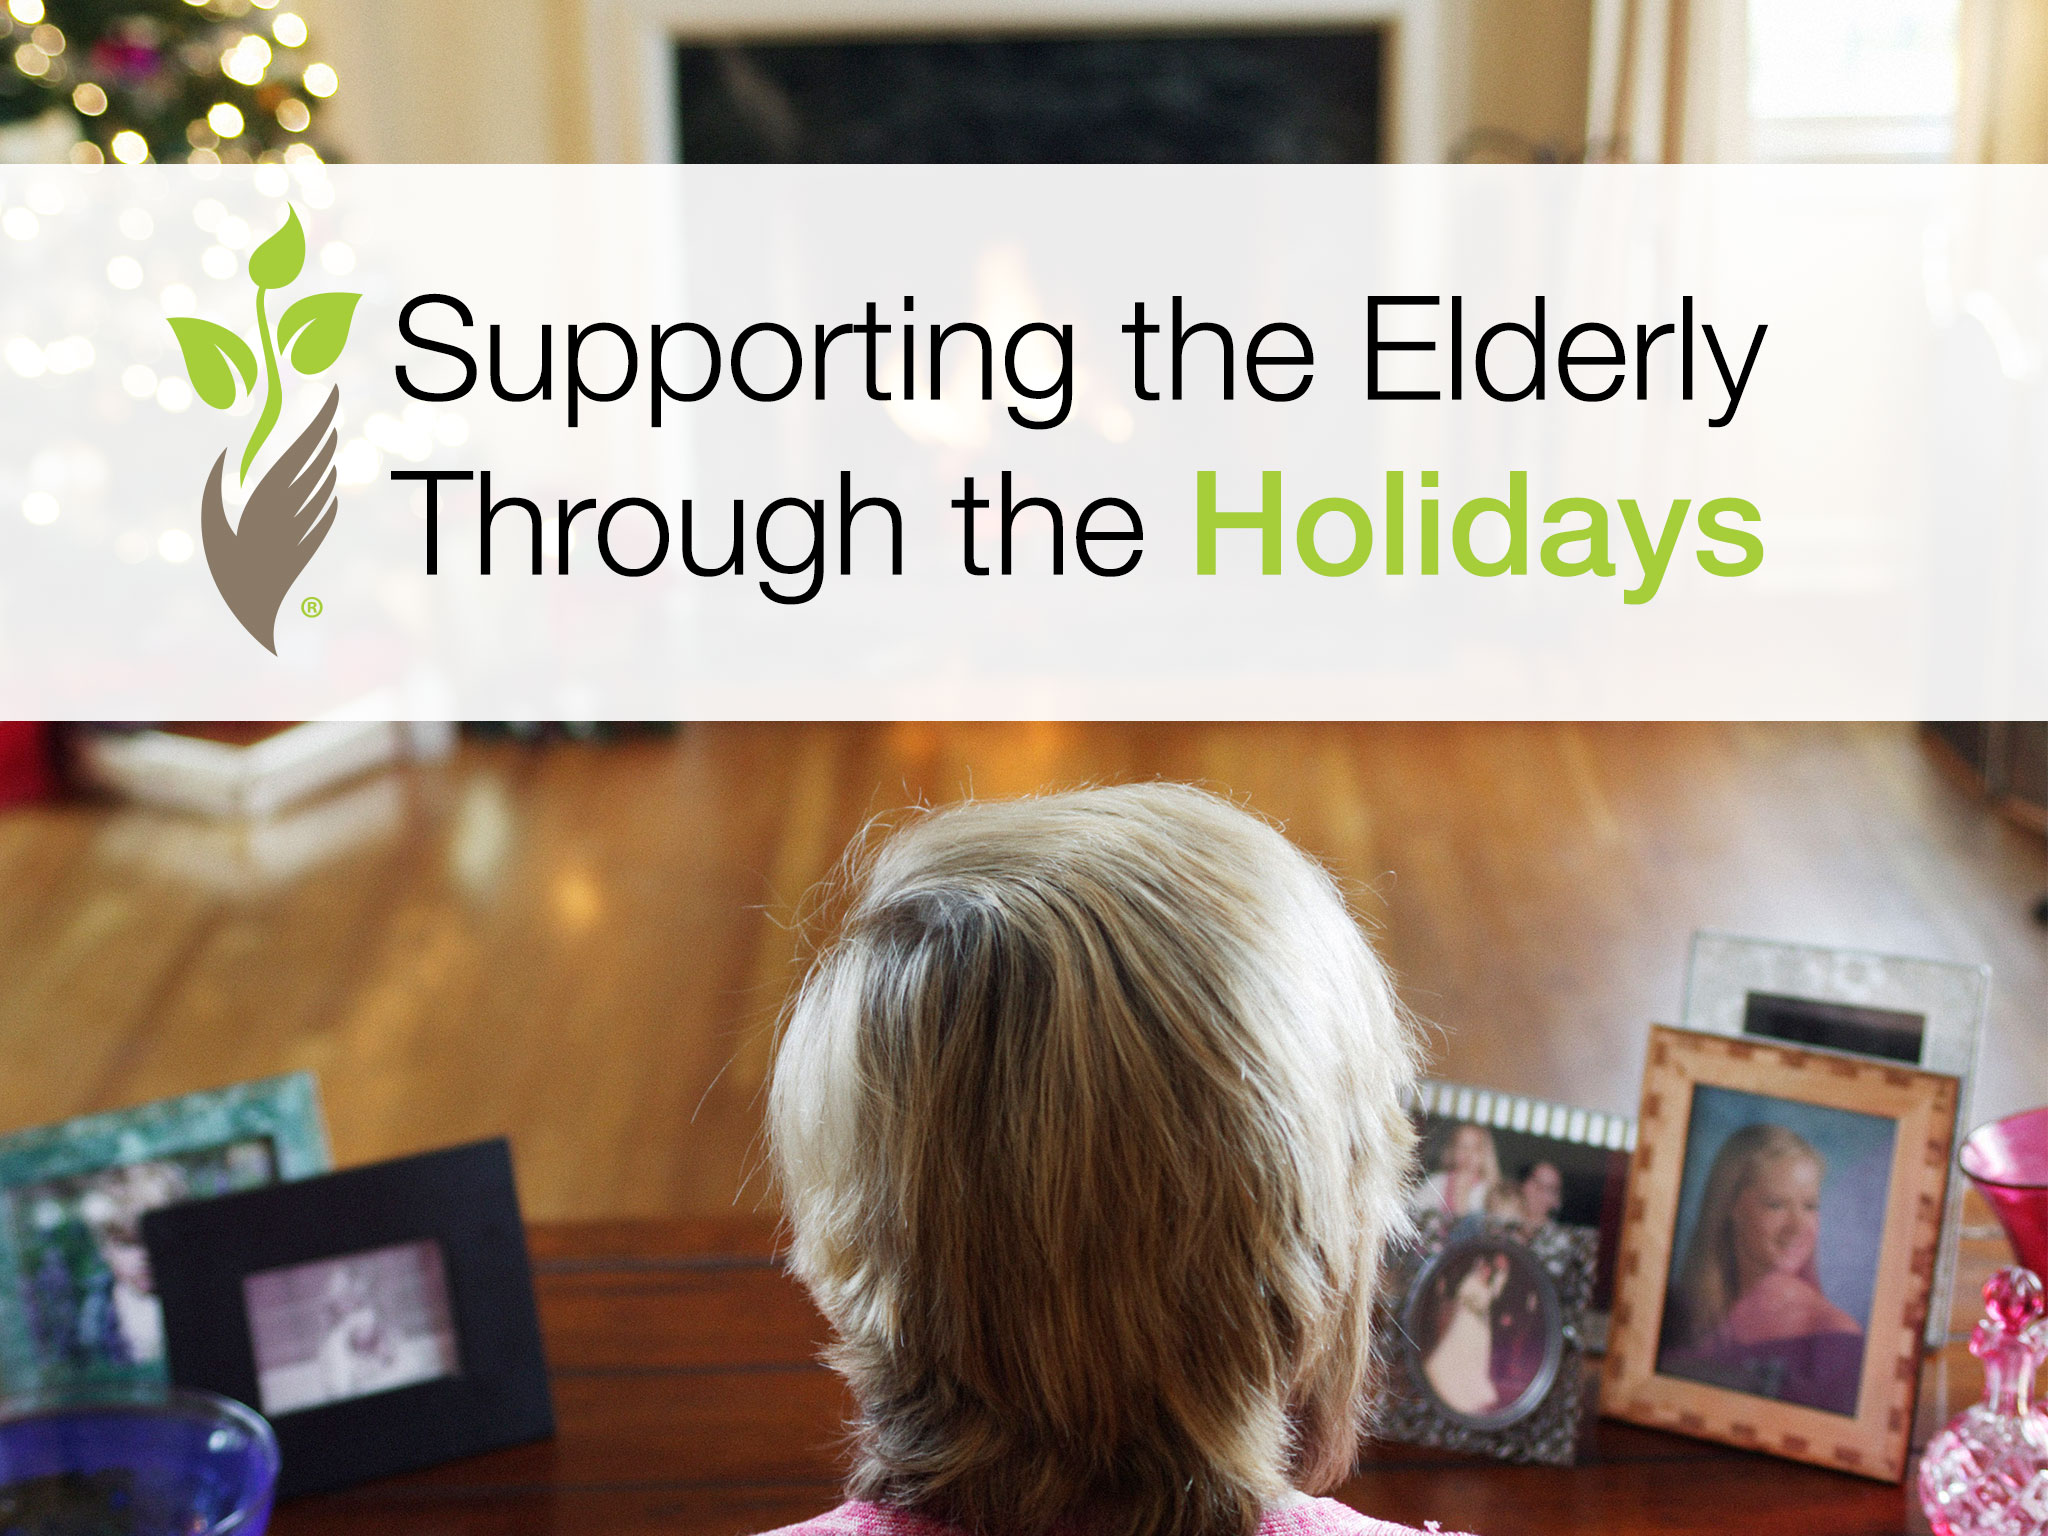 Supporting the Elderly Through the Holidays